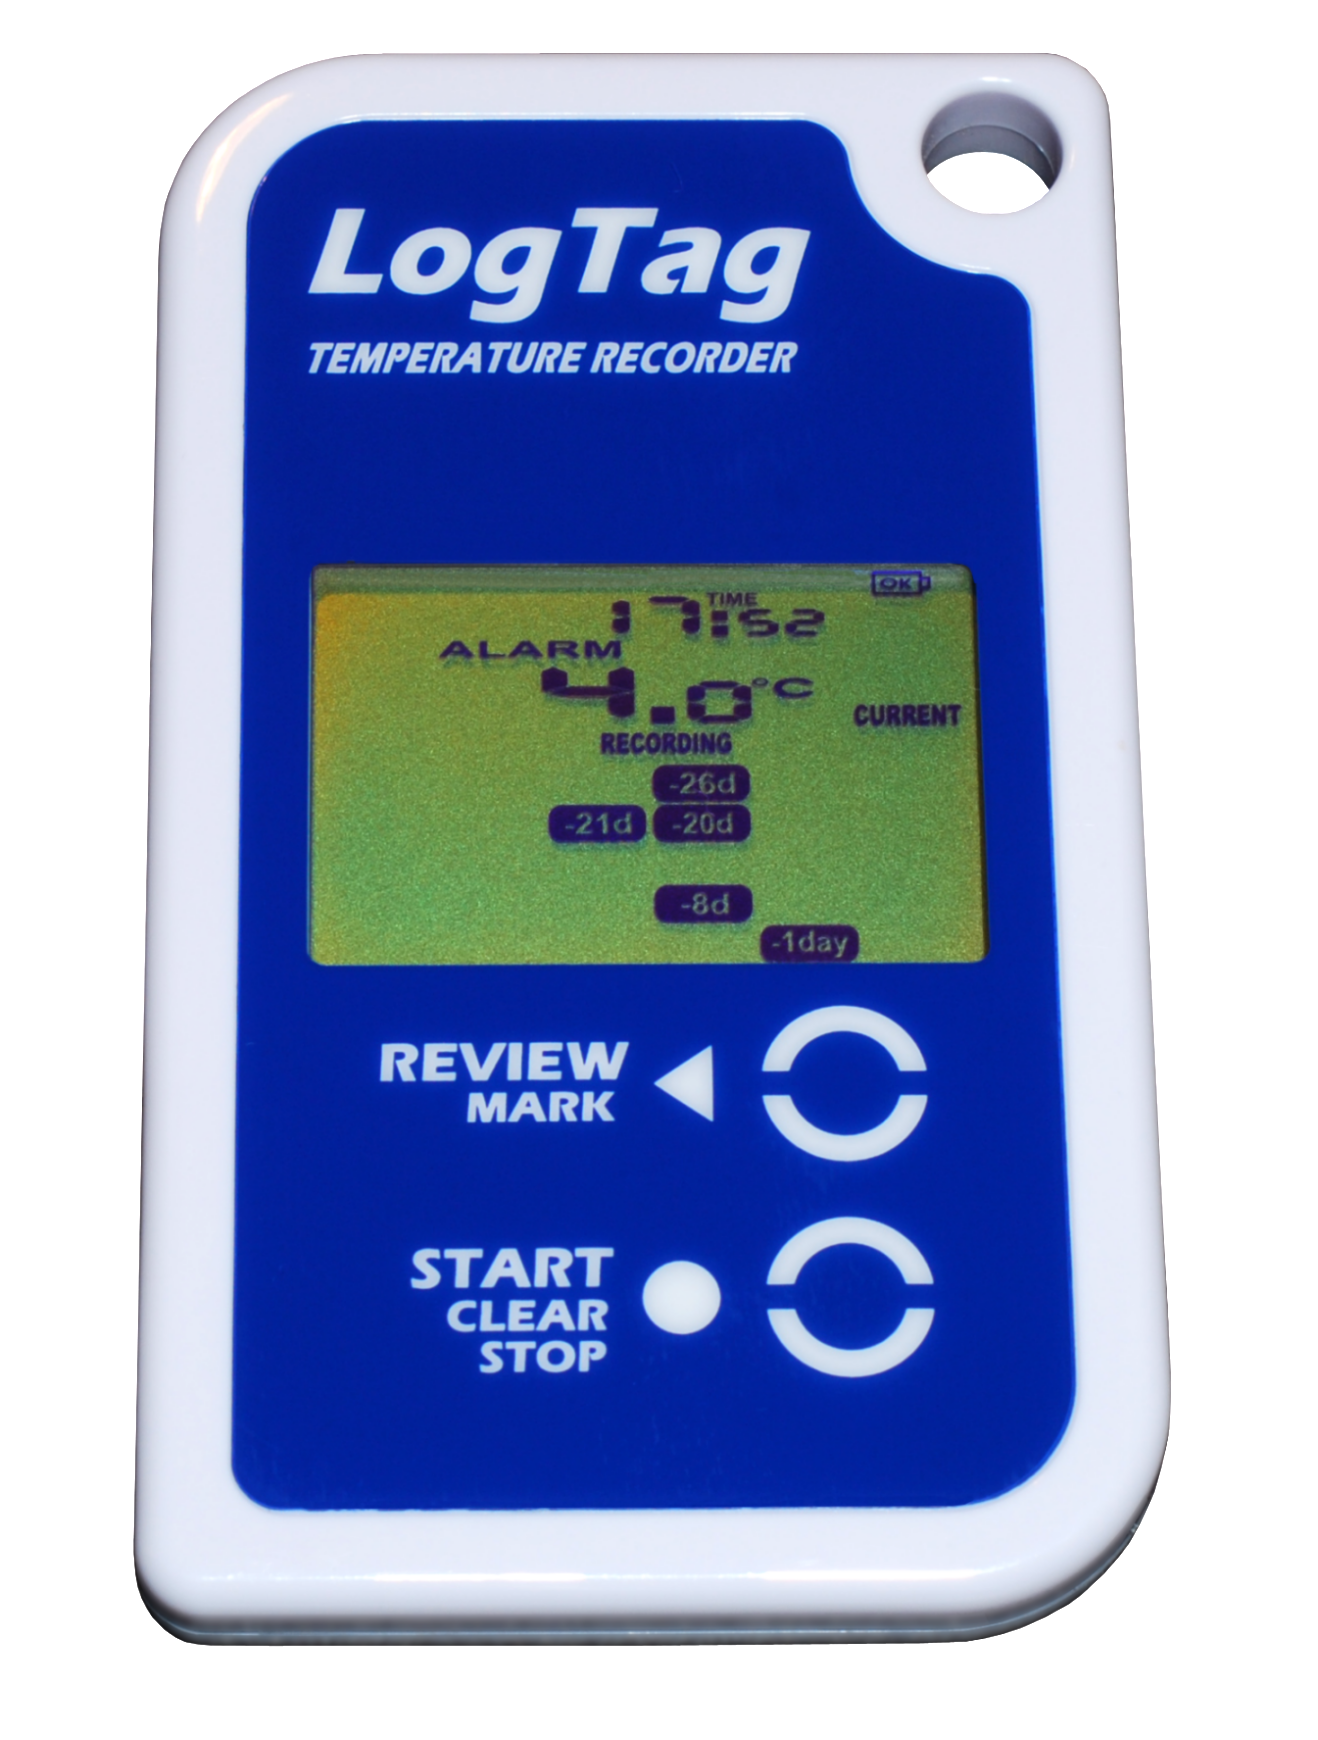 TRID307R Temperature data loggers